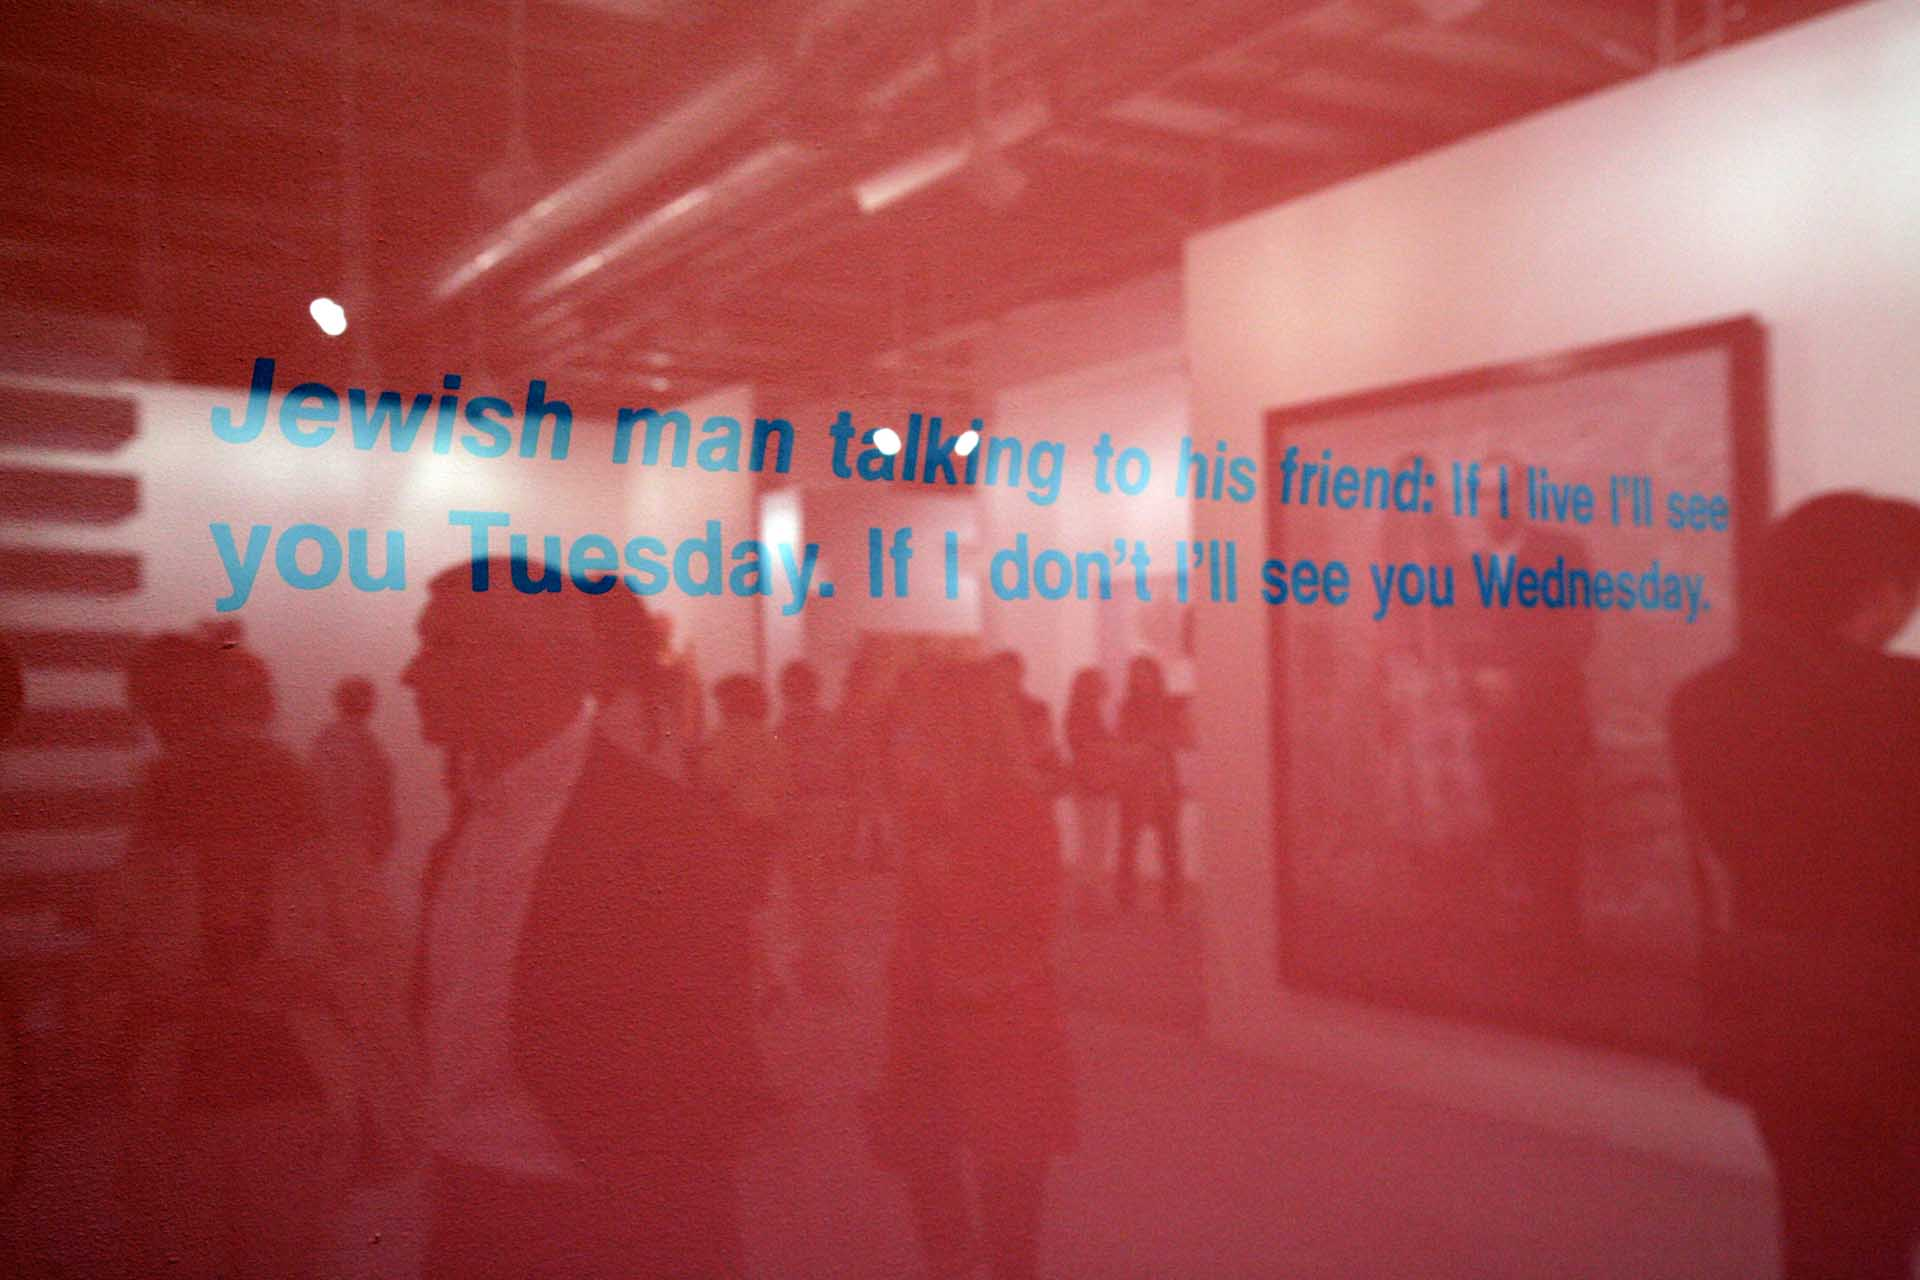 "Art 41, 2010: The bustling Art Basel is reflected in a work of art: ""Jewish man in conversation with his friend. If I'm alive, I'll see you Tuesday. If not, I'll see you on Wednesday."""